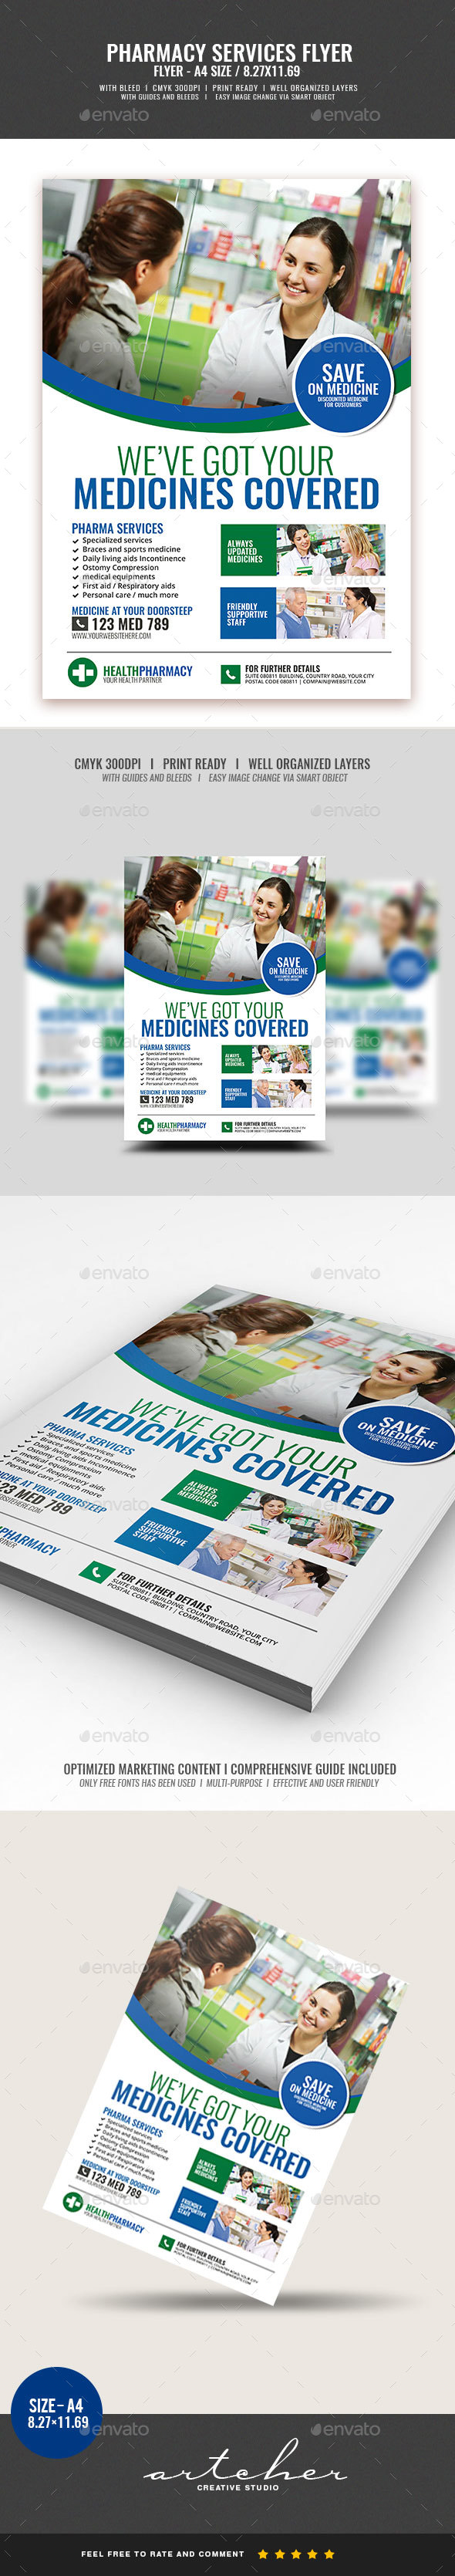 Pharmacy Services Flyer v2 - Commerce Flyers